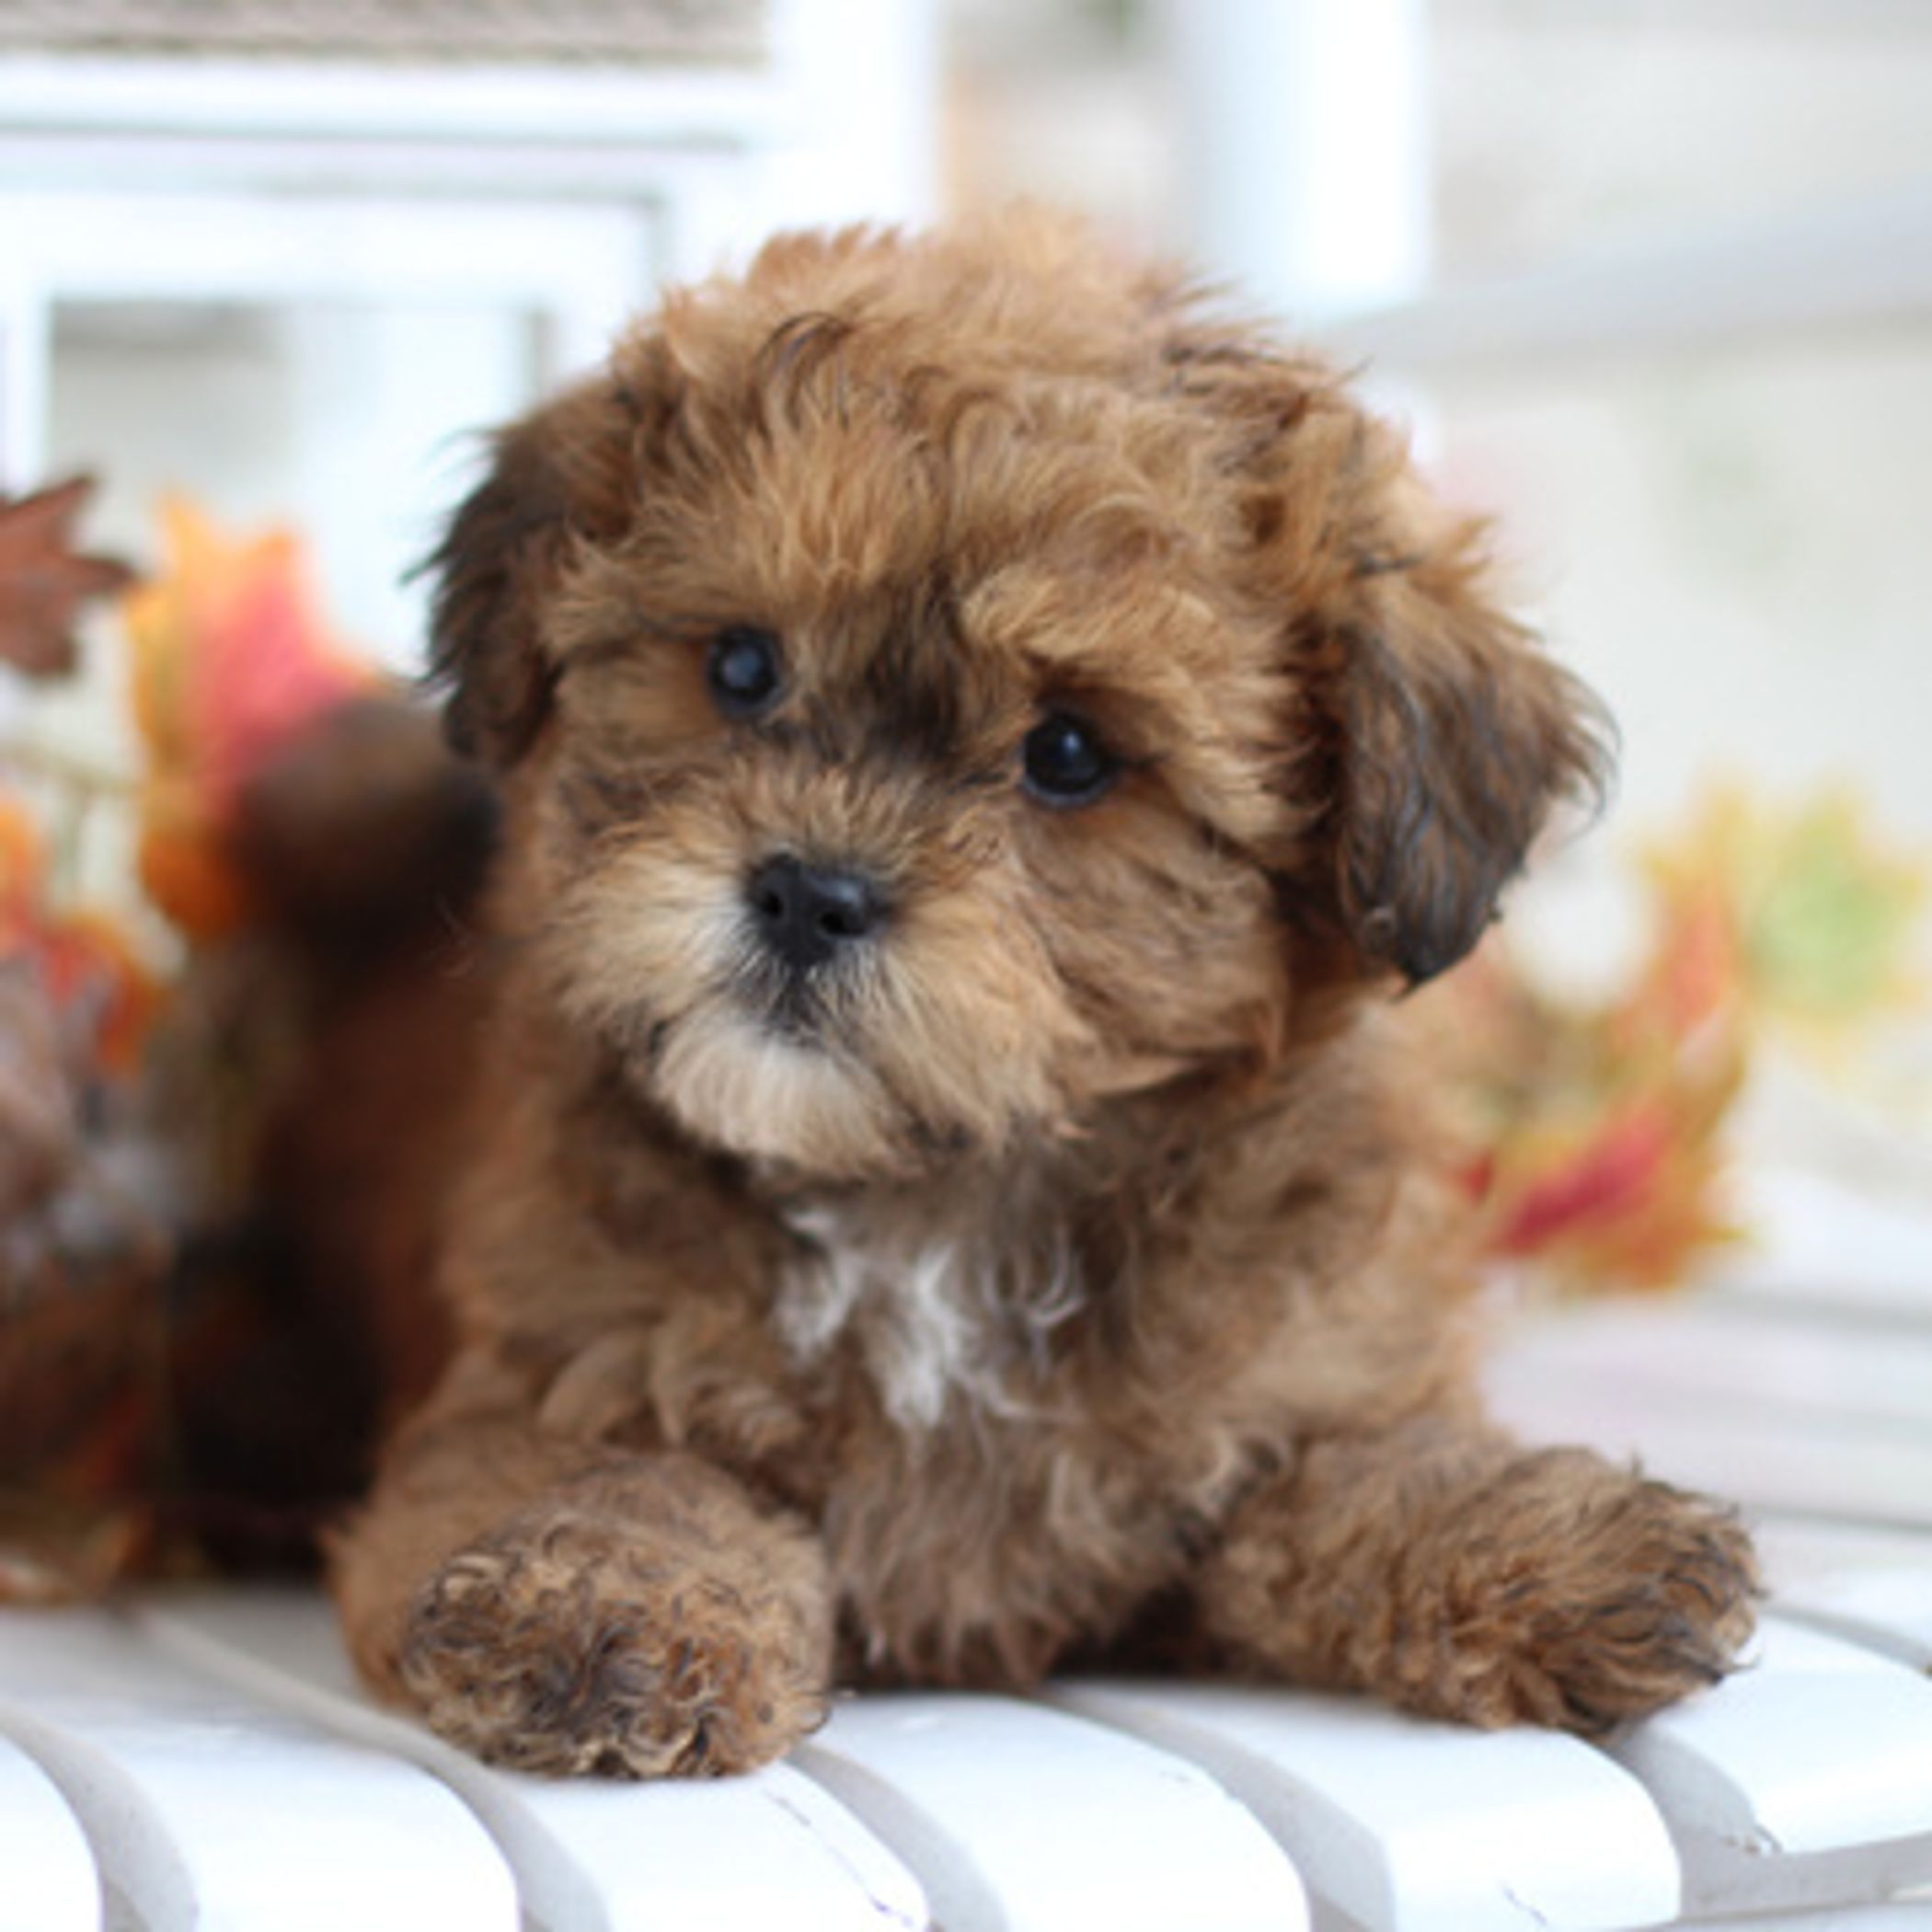 Home Page For Timbercreek Puppies Shihpoo Puppies For Sale